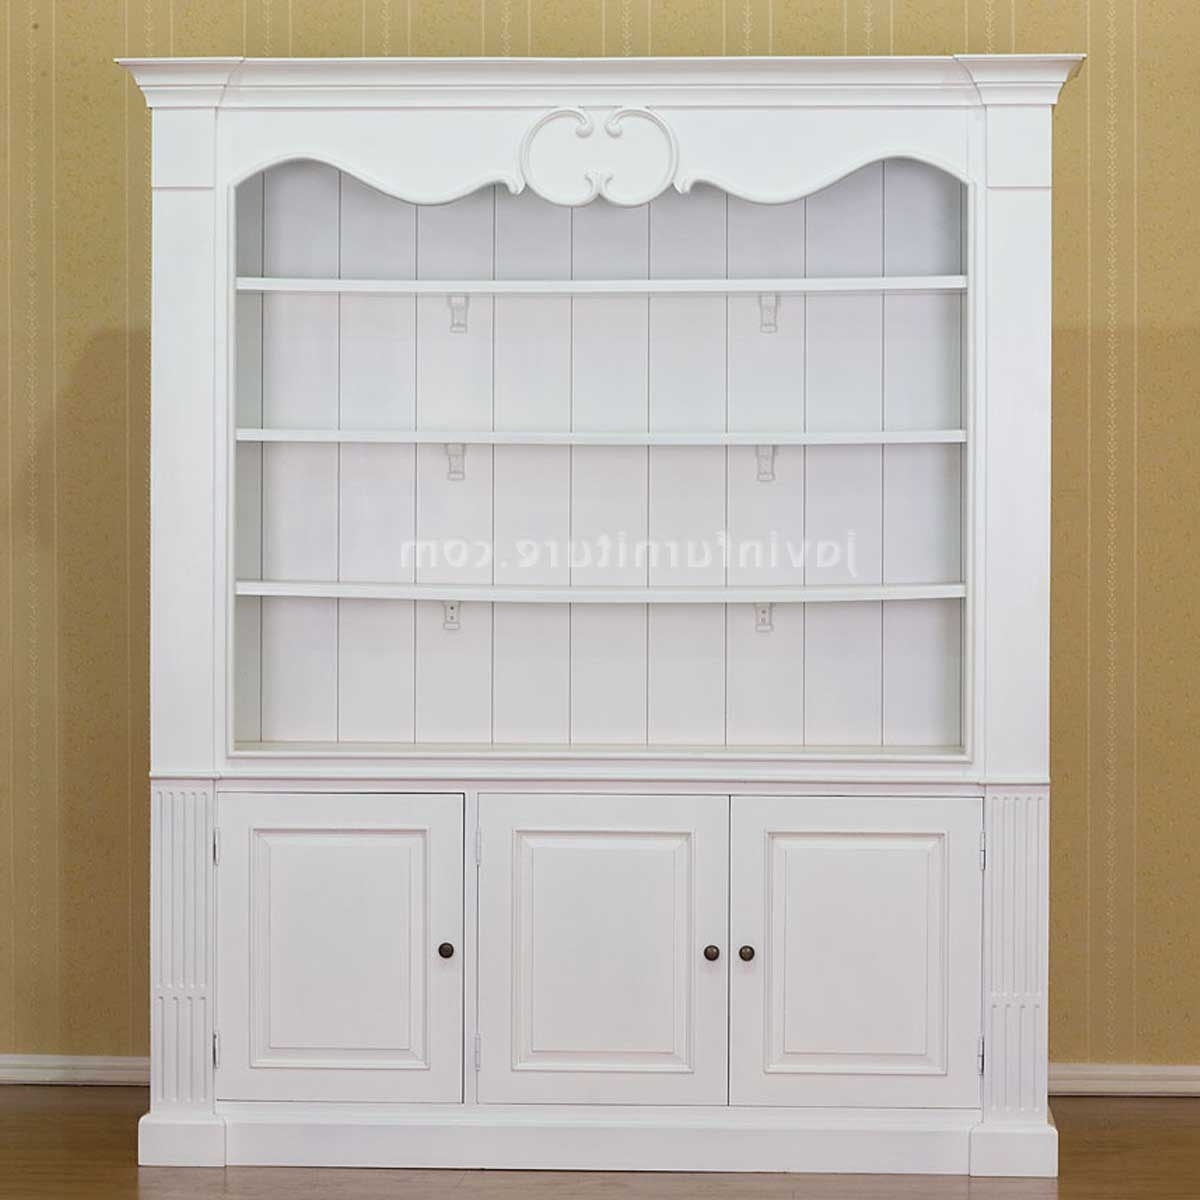 Best And Newest Cool Versatile White Bookshelf With Doors Designs – Decofurnish Intended For Bookcases With Doors On Bottom (View 2 of 15)